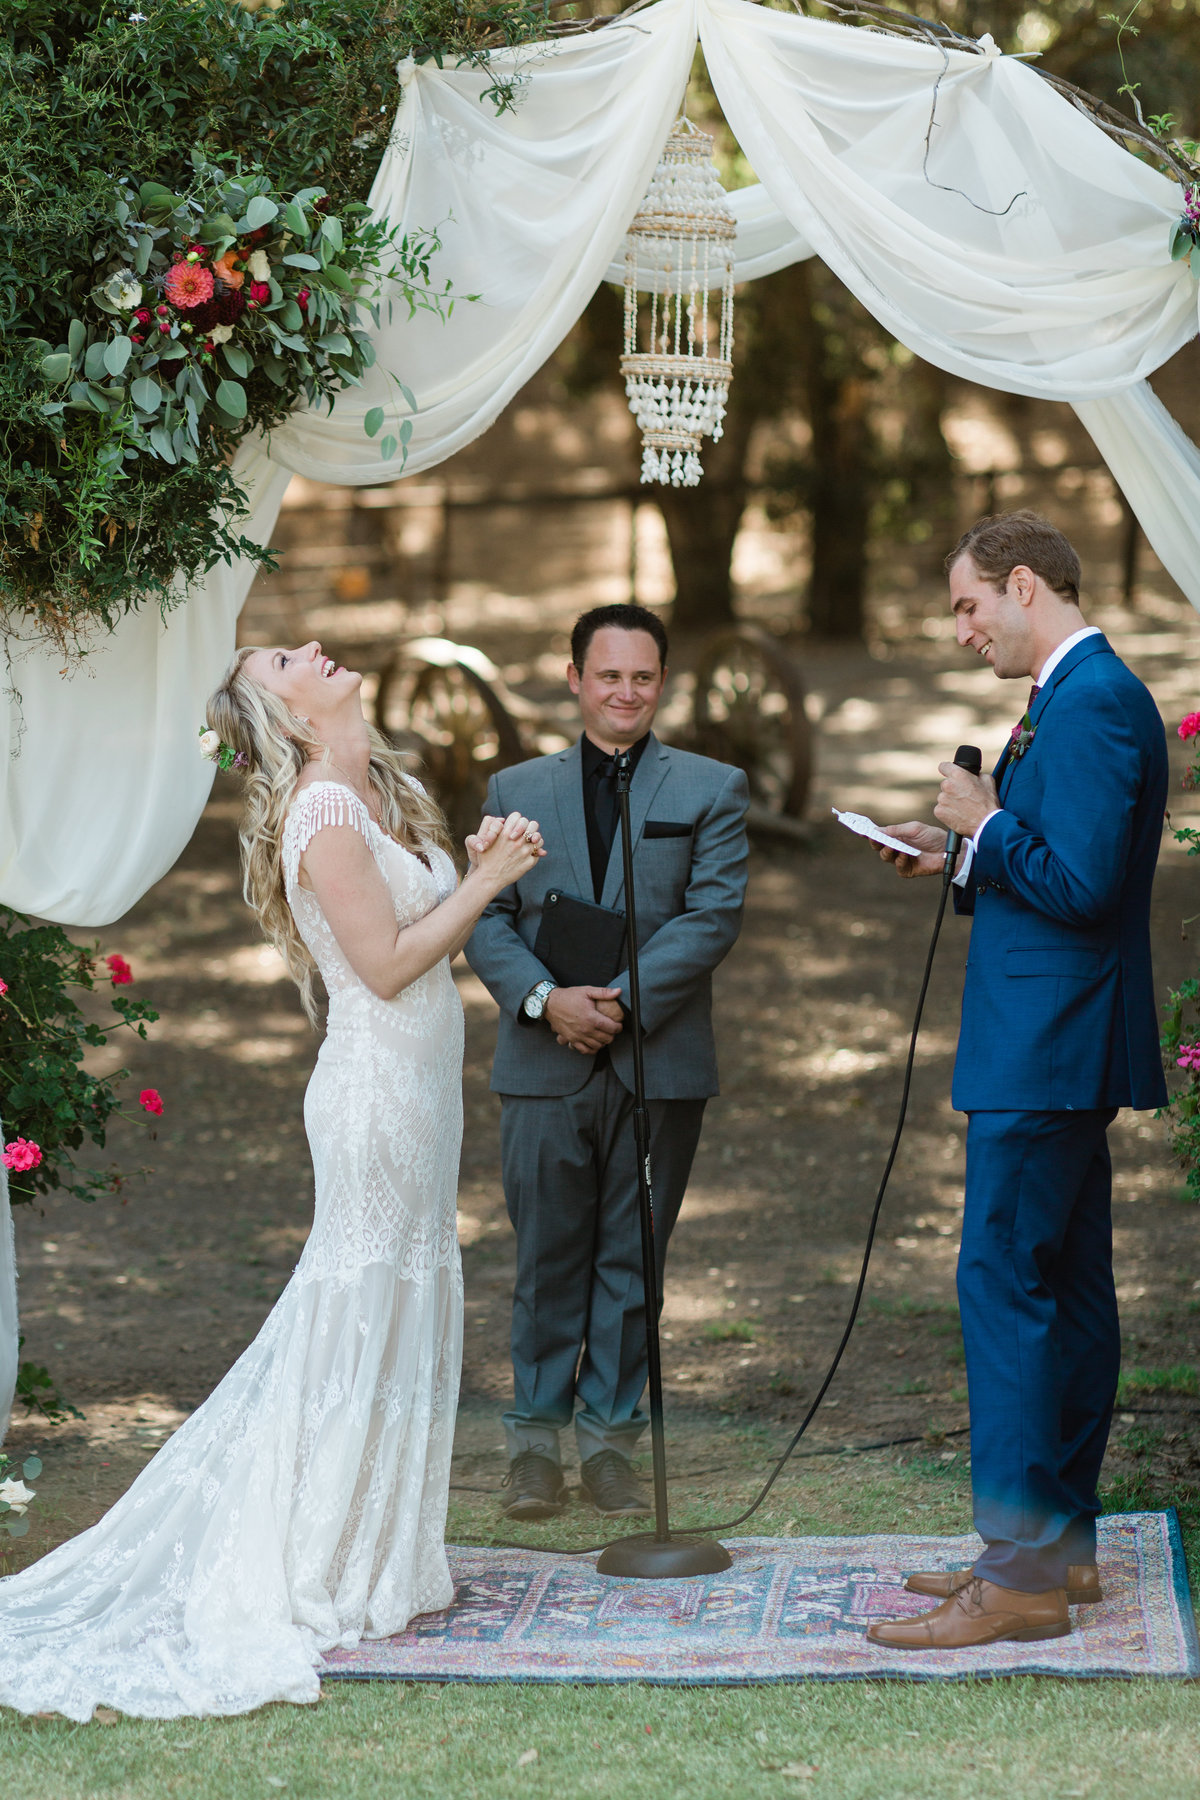 candid wedding ceremony photos at casa de alvarez